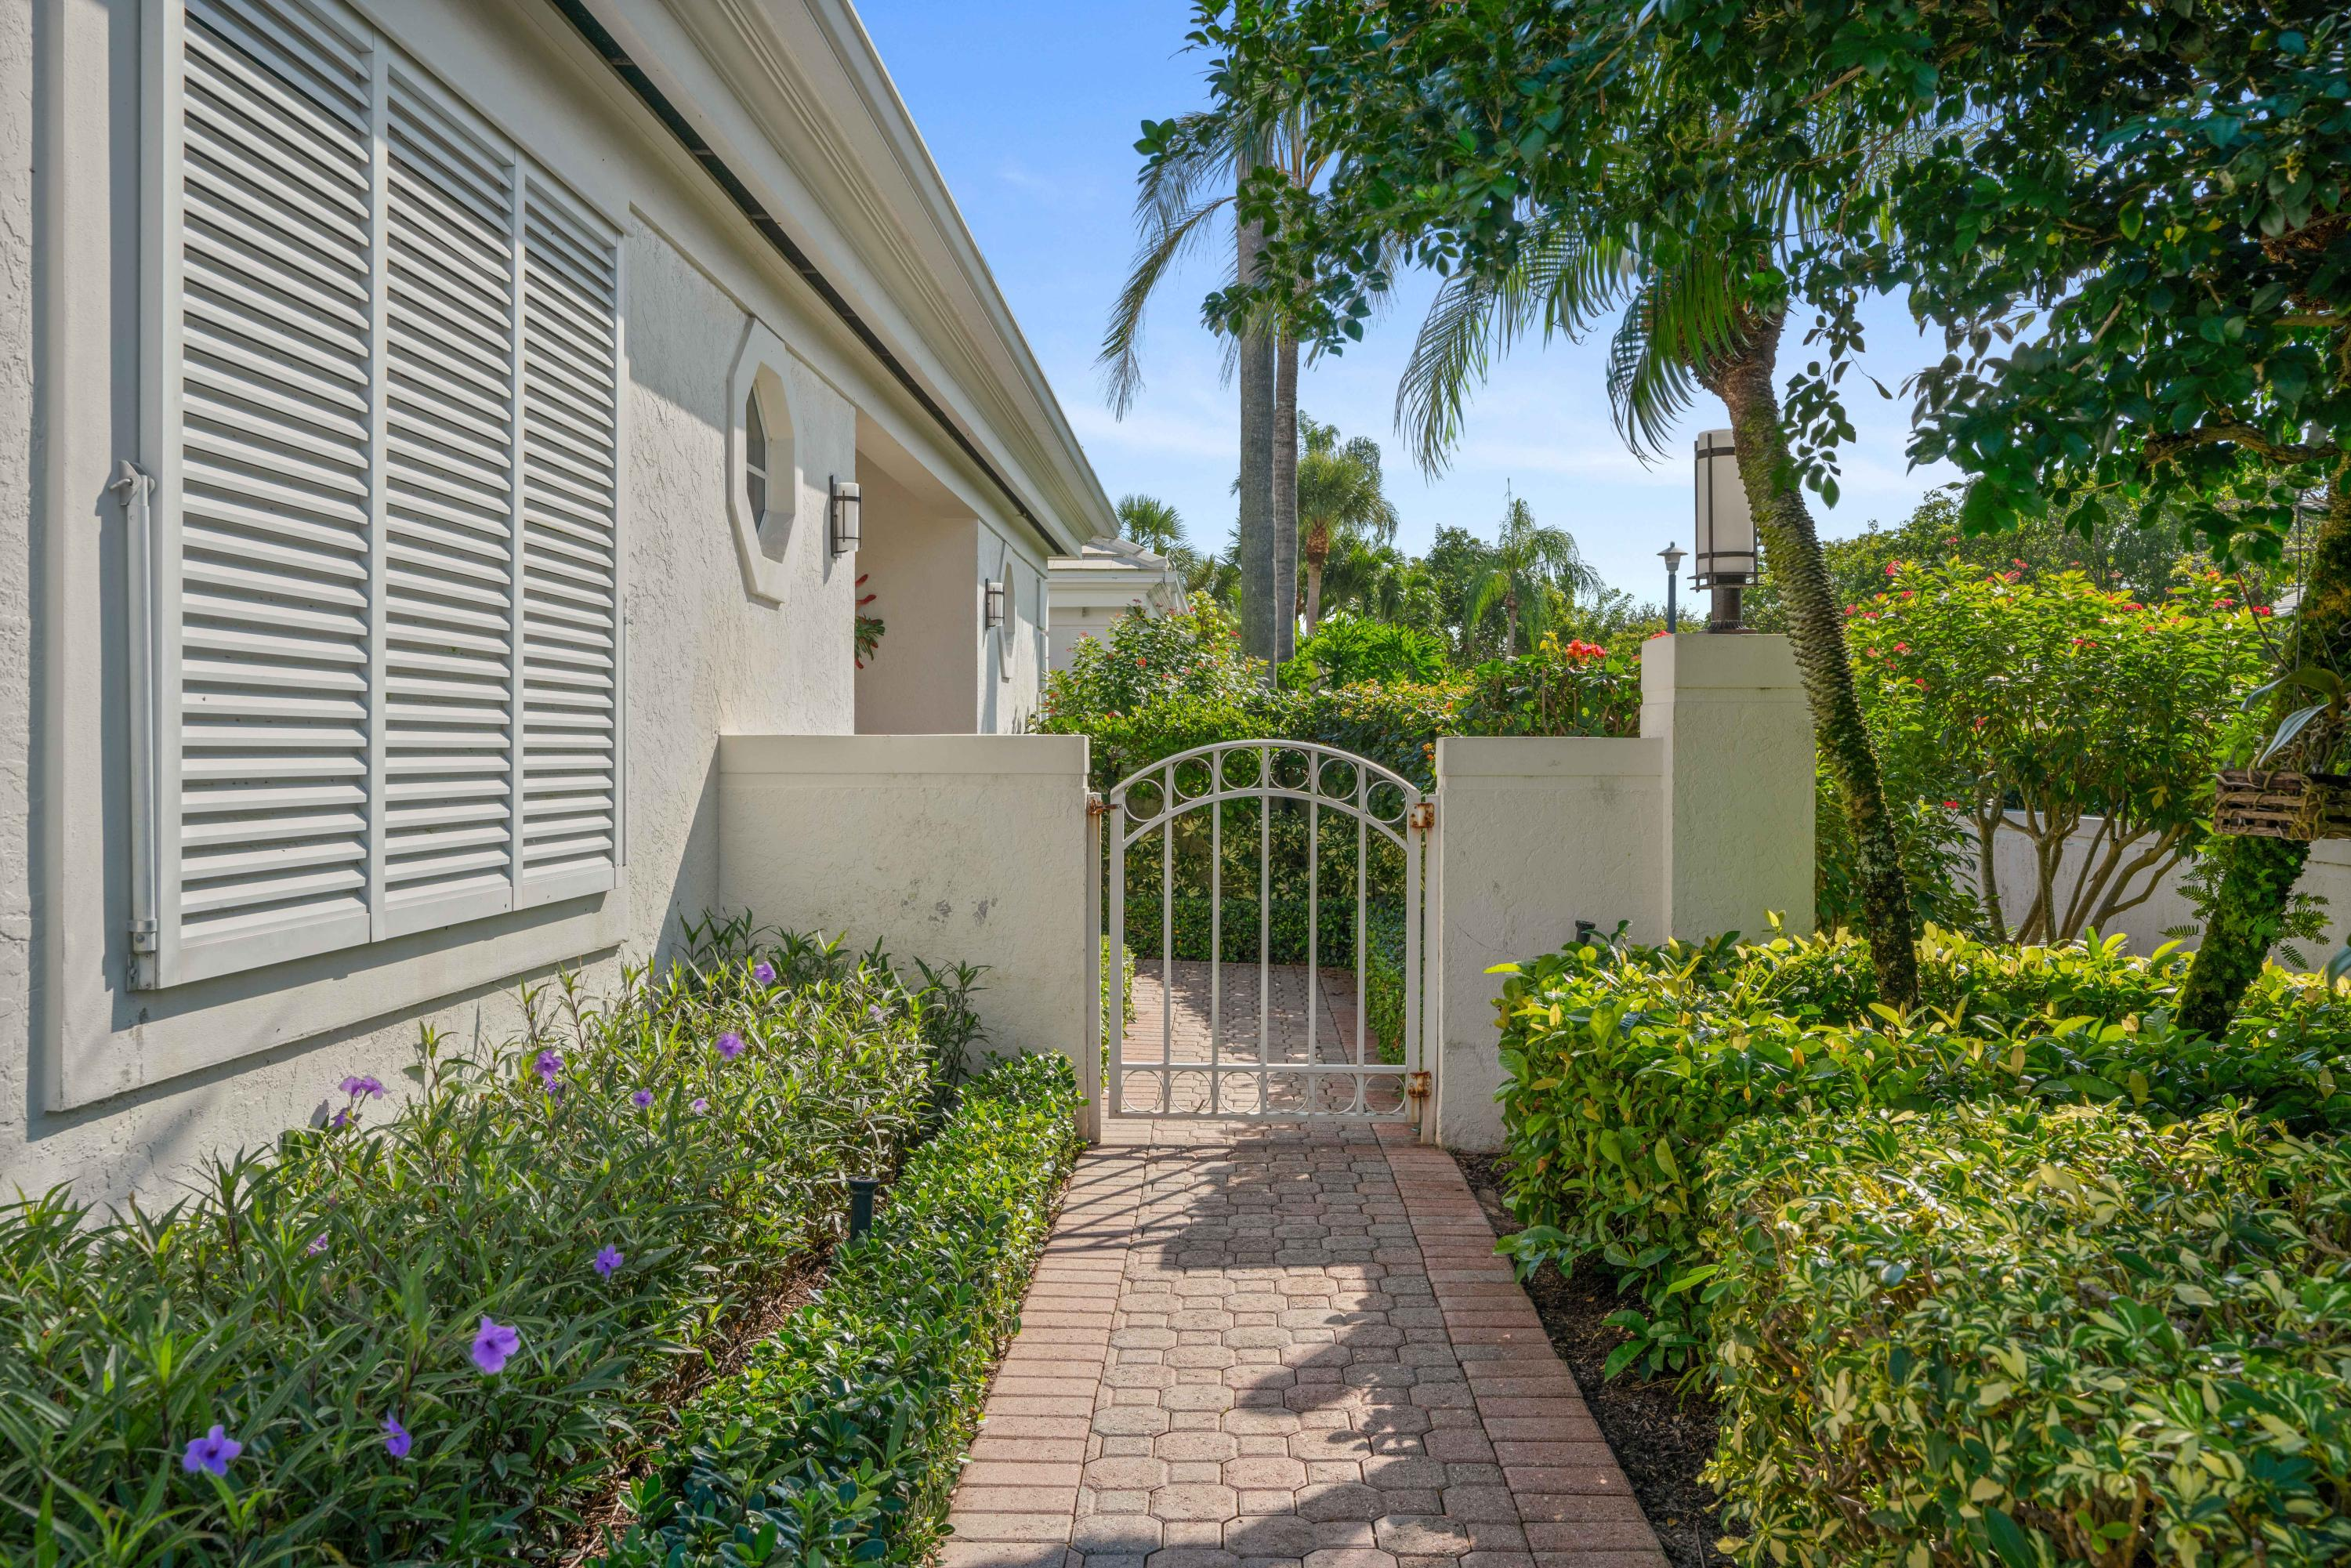 3101 Captains Way, Jupiter, Florida 33477, 2 Bedrooms Bedrooms, ,2 BathroomsBathrooms,A,Single family,Captains,RX-10573440